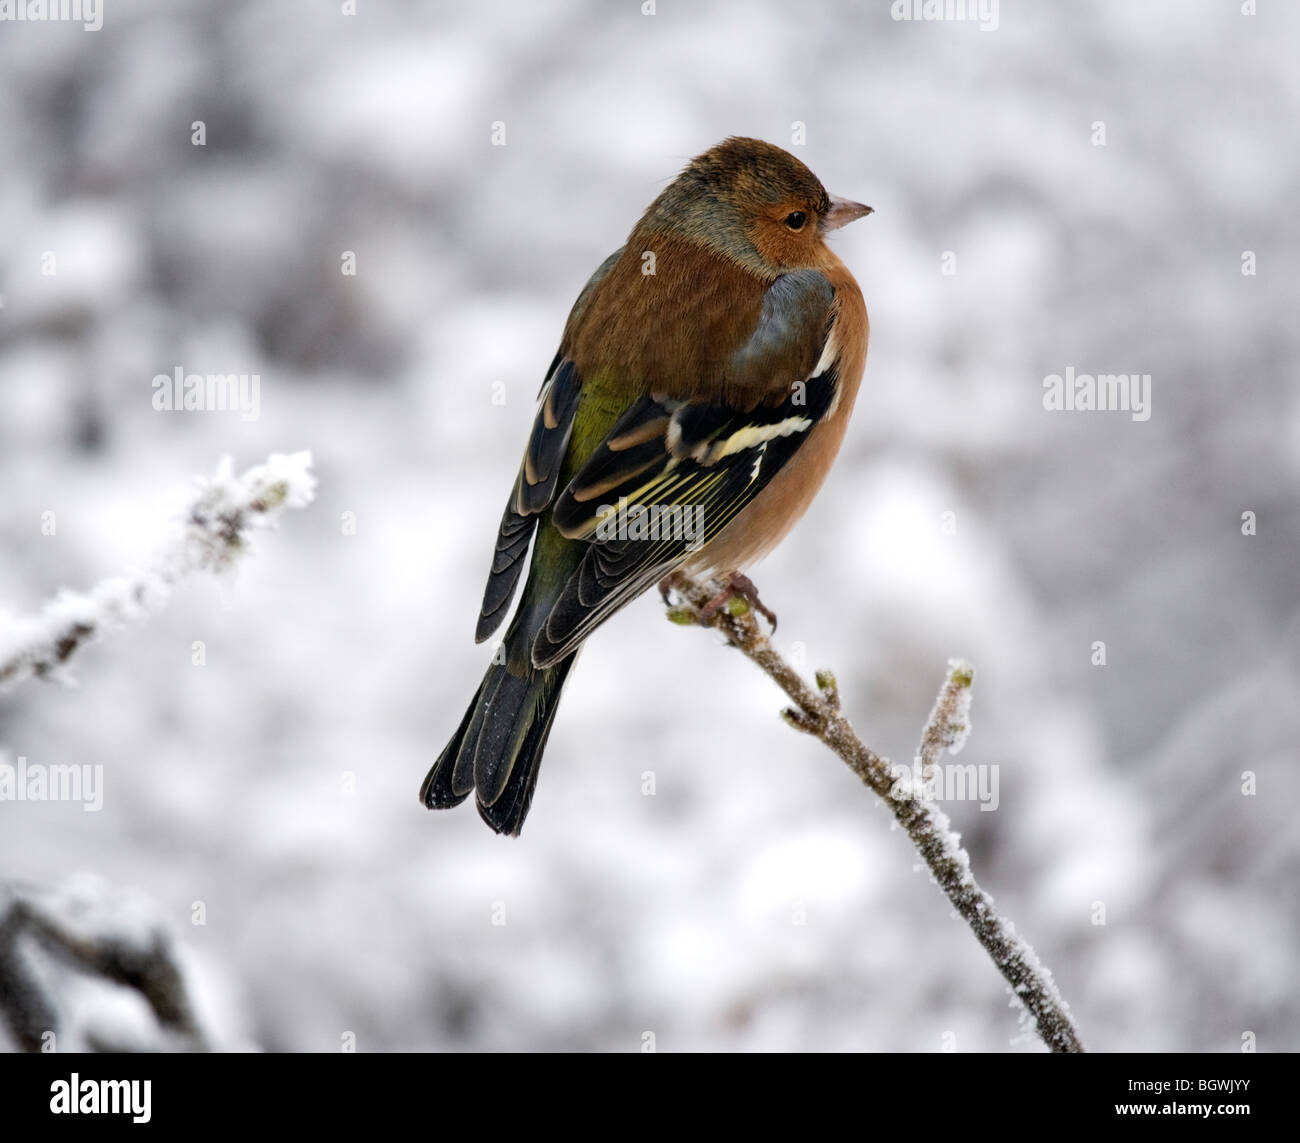 Chaffinch Fringilla Coelebs in Winter perched on a branch. - Stock Image